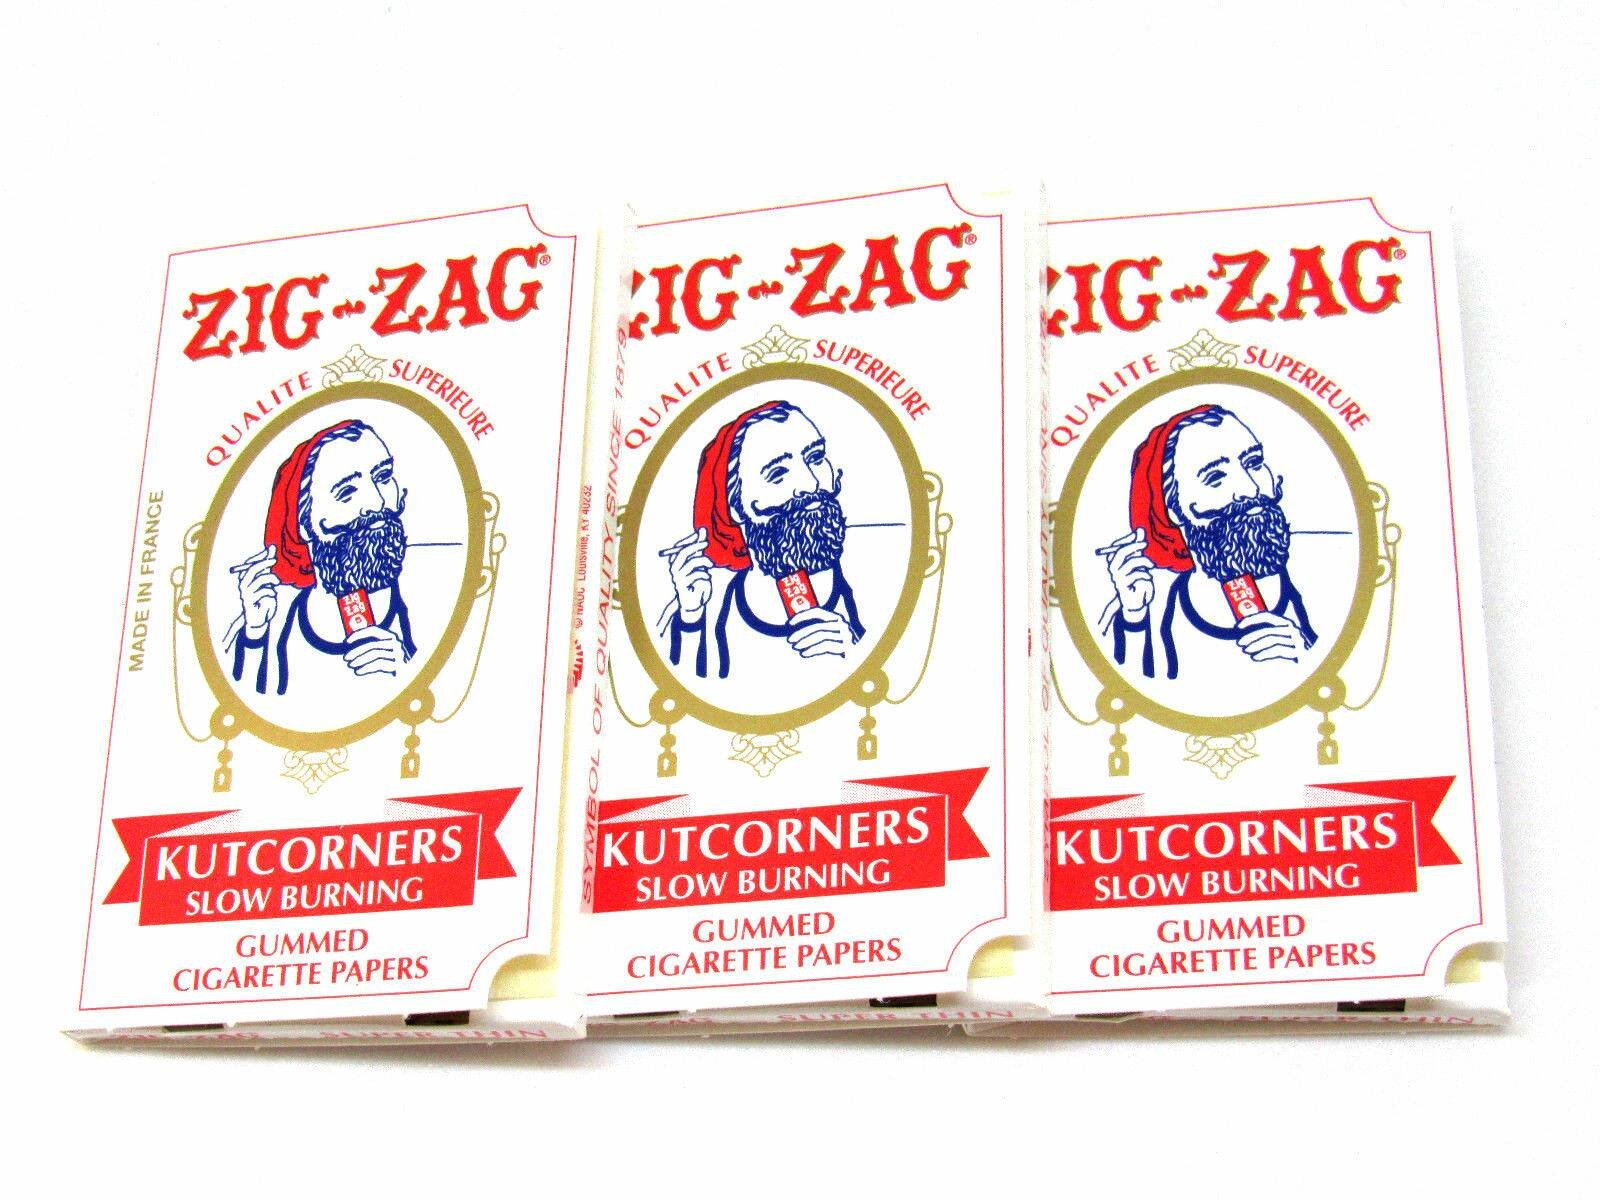 Pack of 3 32 Papers Per Pack Kutcorners Cigarette Rolling Papers by Zig Zag USA